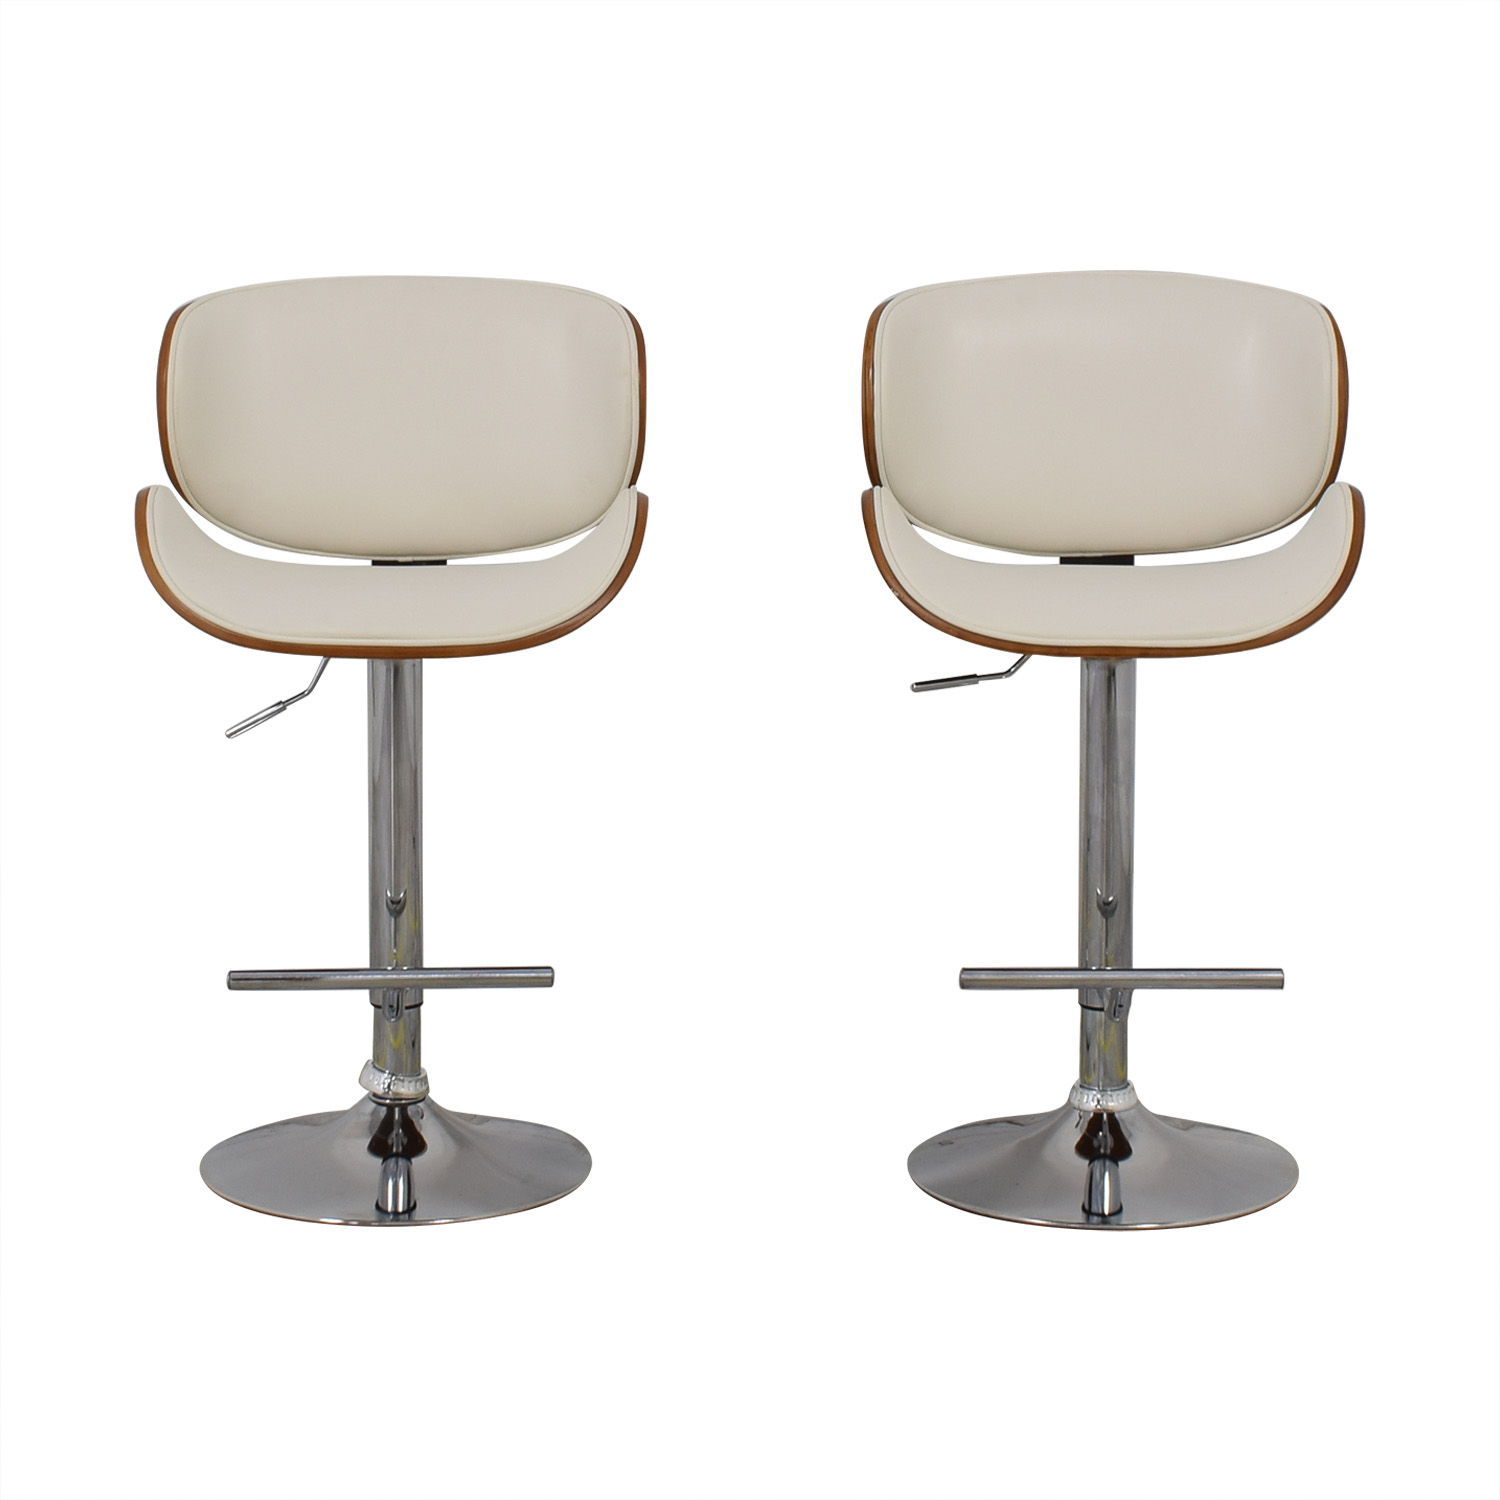 buy Raymour & Flanigan Swivel Bar Stools Raymour & Flanigan Chairs